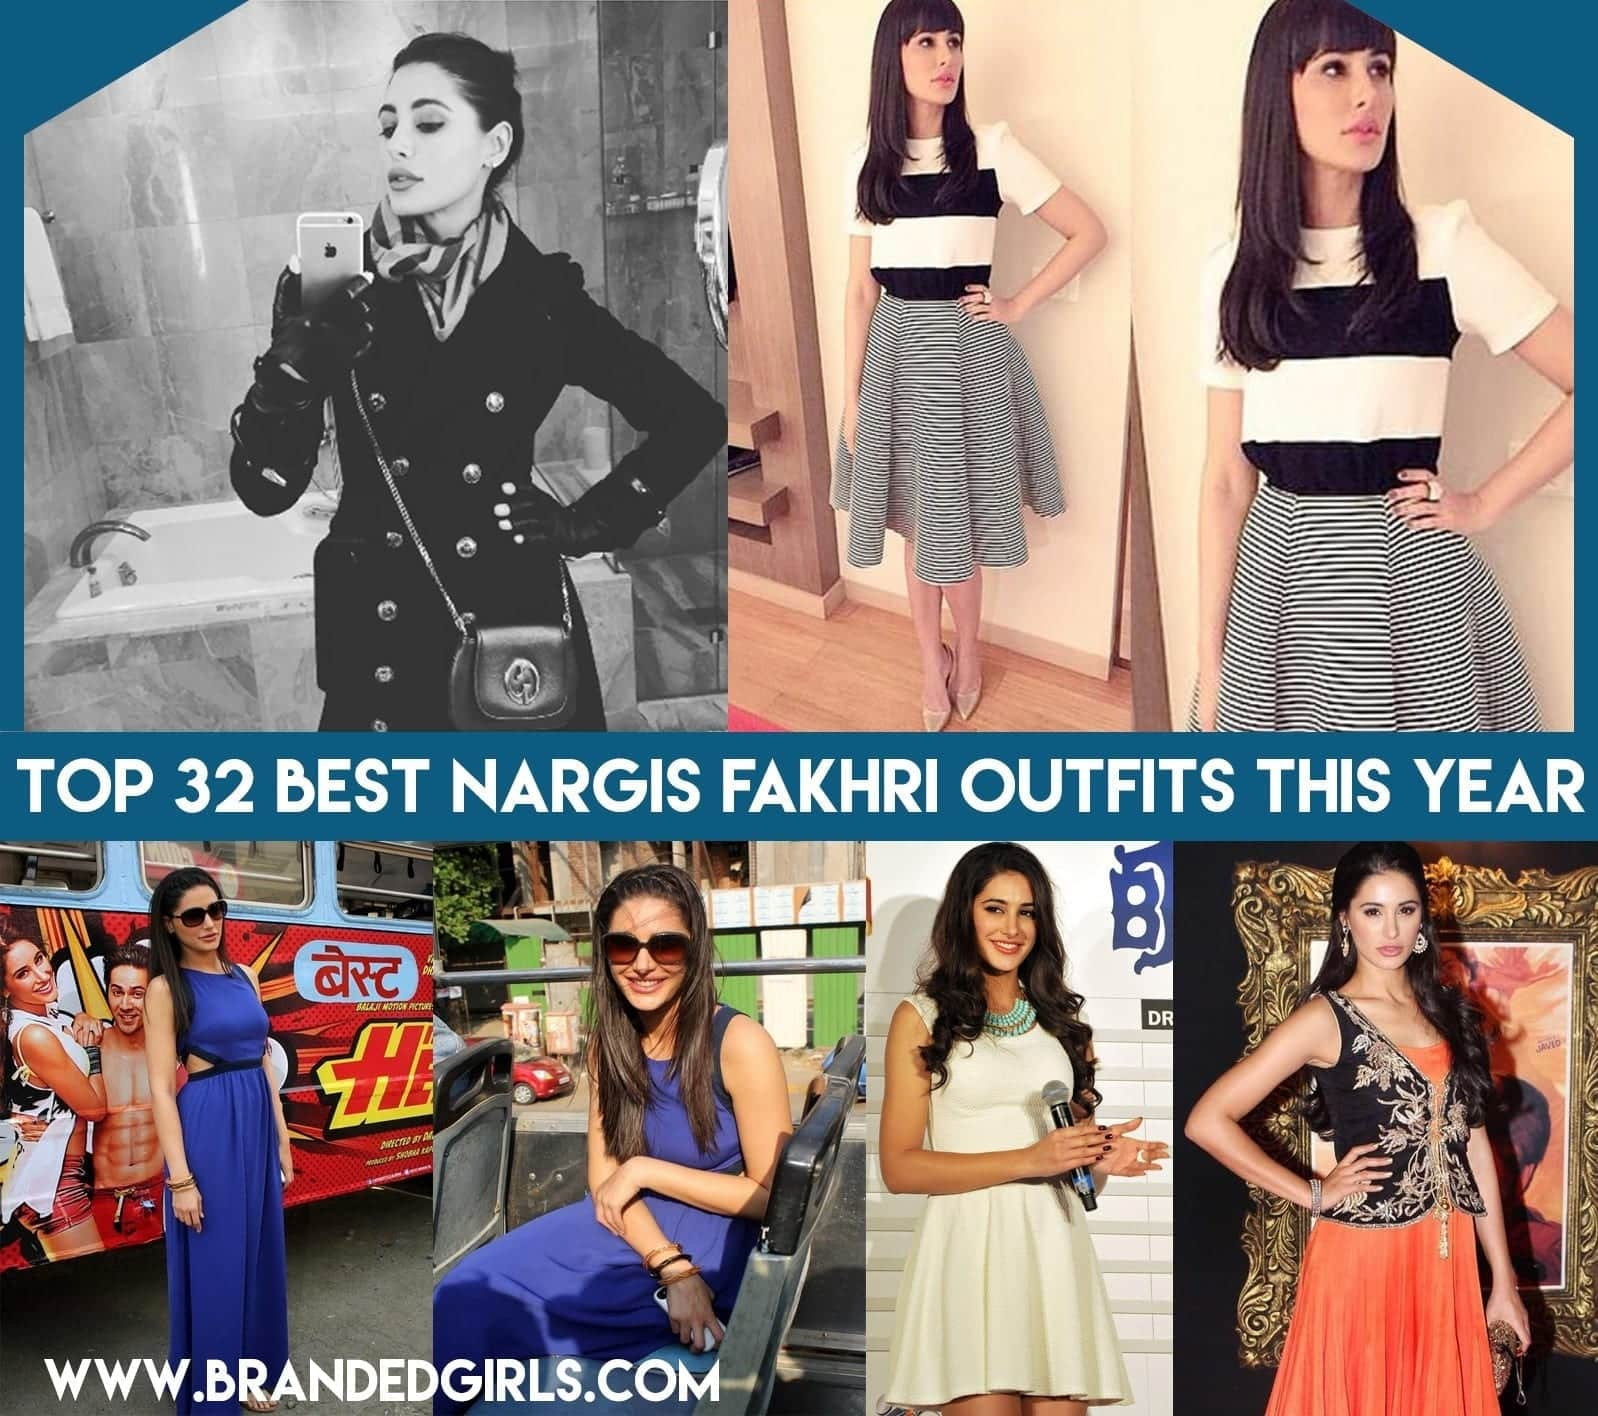 Top 32 Best Nargis Fakhri Outfits